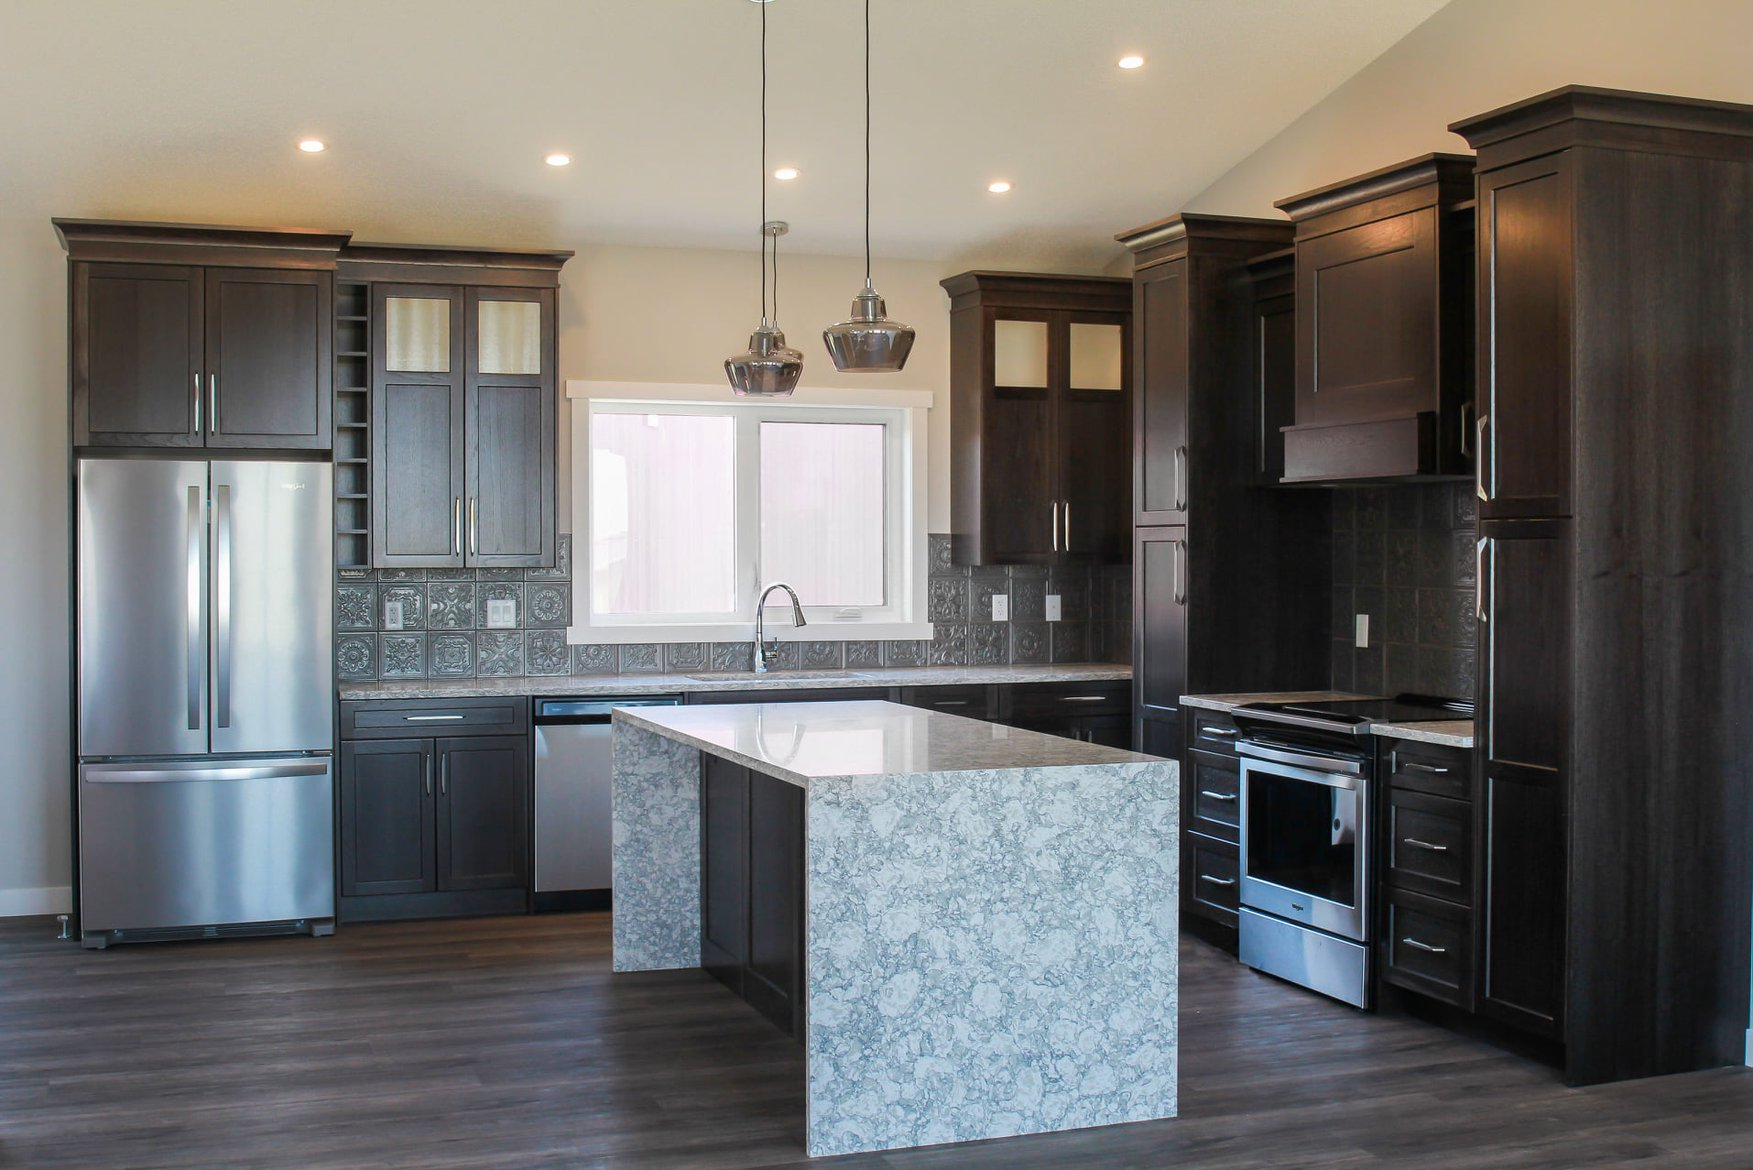 modualar kitchen pre built ready to move homes by nelson homes.jpg